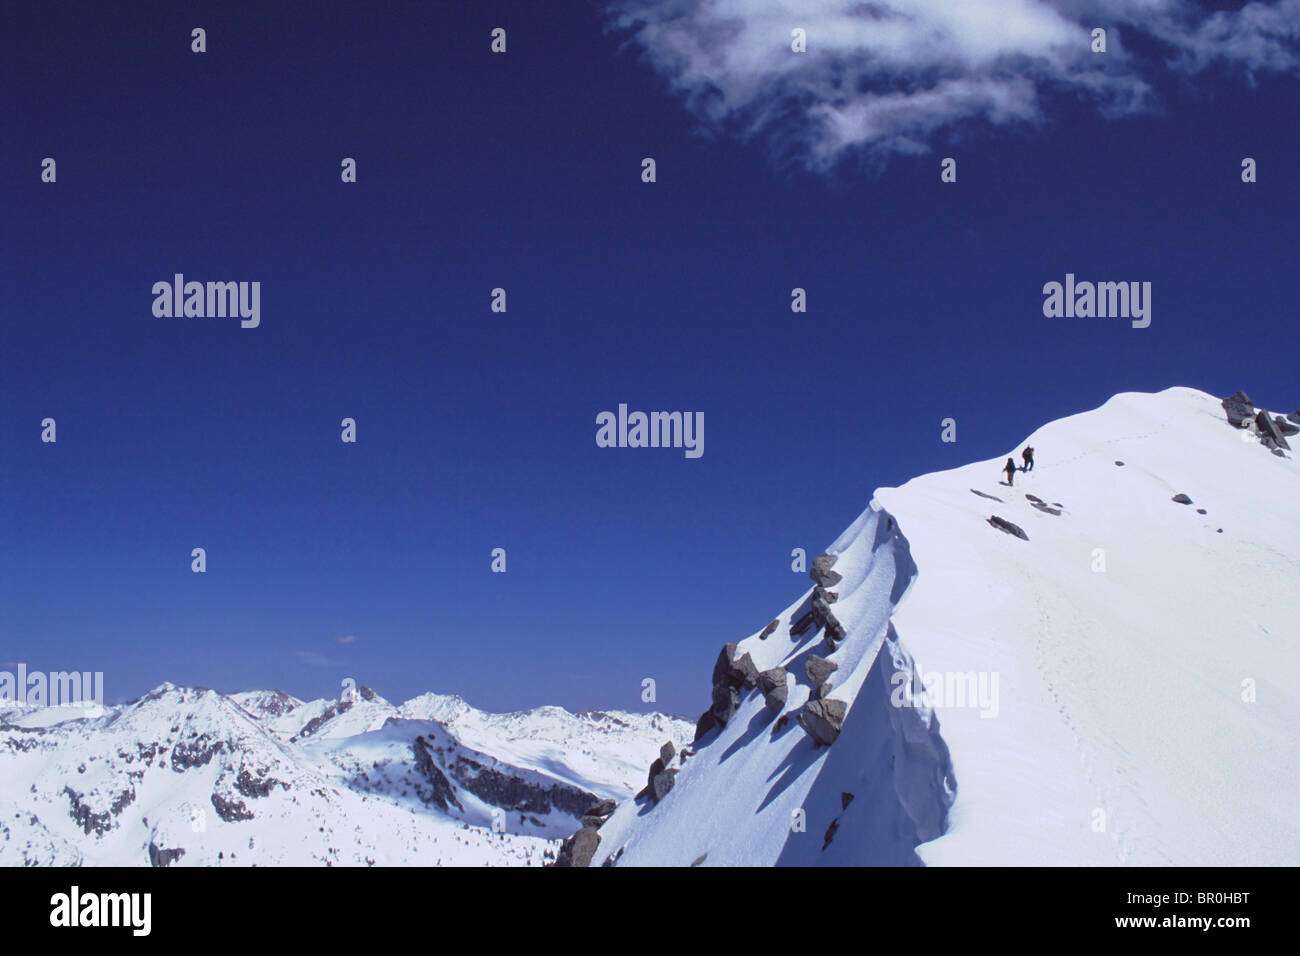 Mountaineering in winter on the summit of a peak in the Wasatch Mountains in winter. - Stock Image